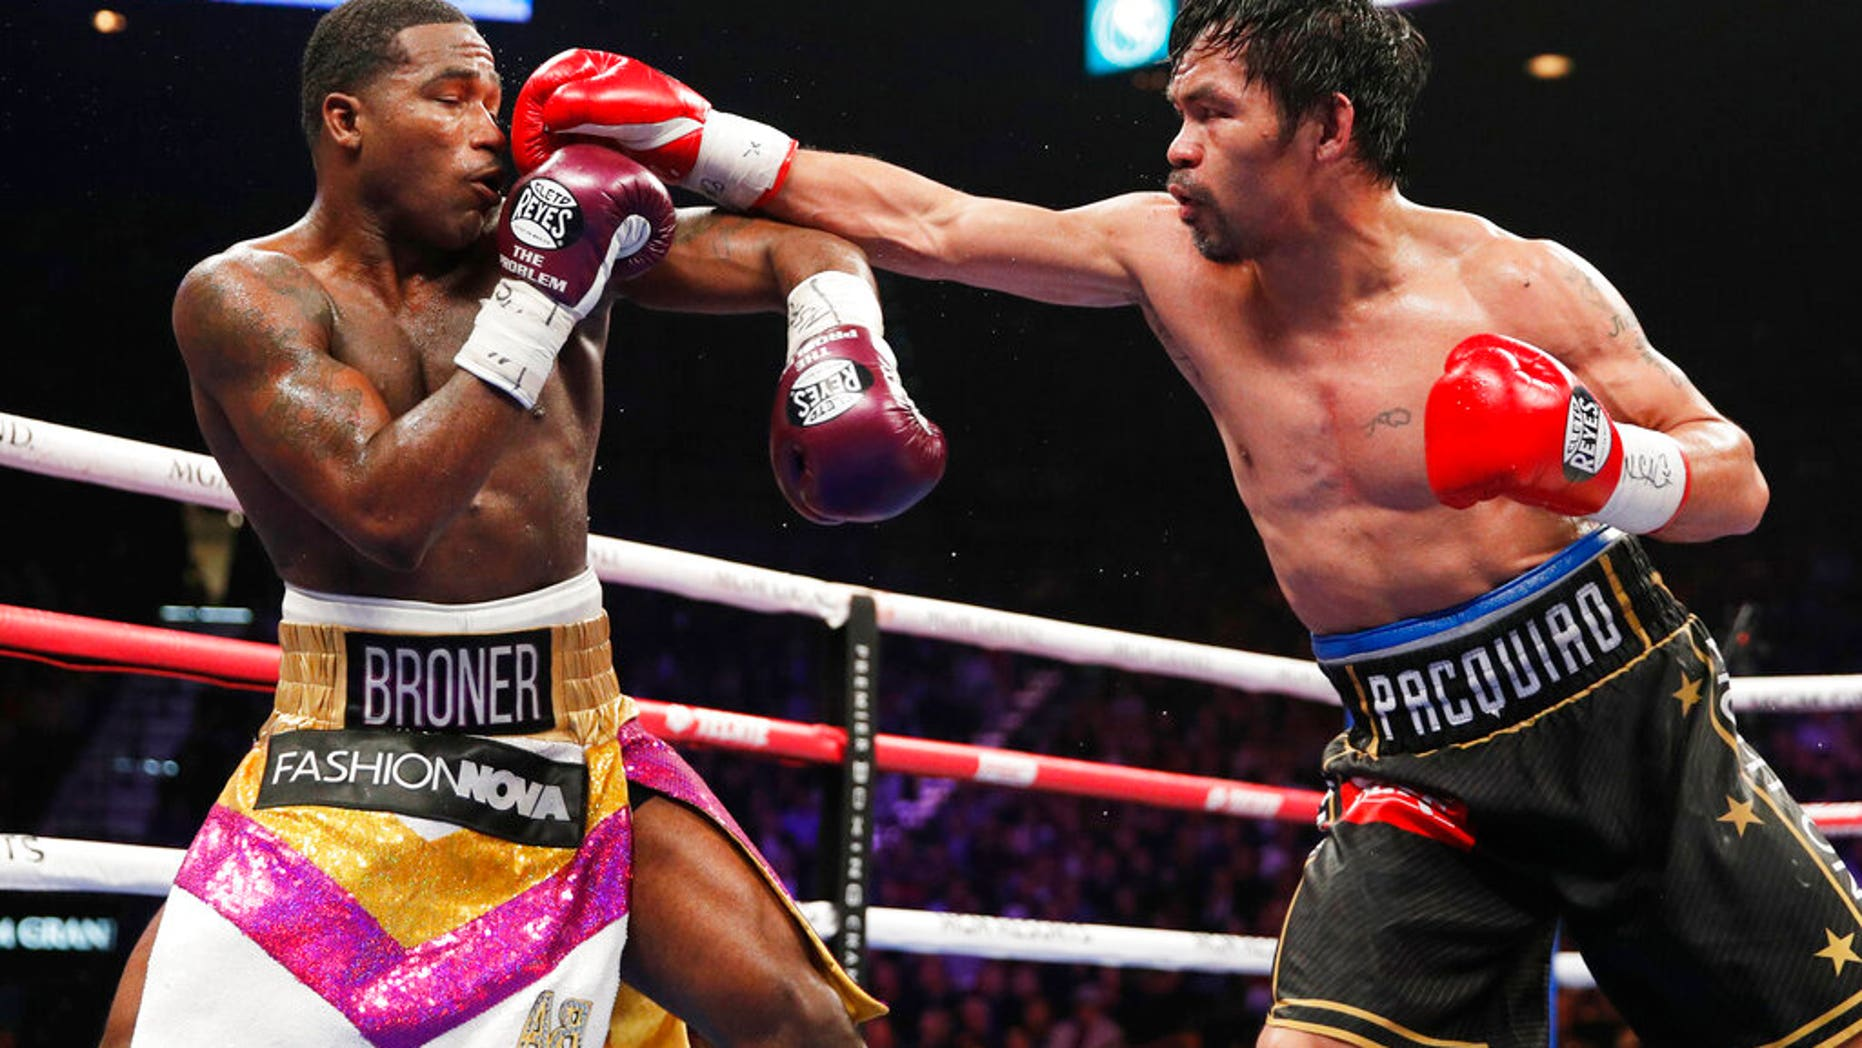 Manny Pacquiao, right, fights Adrien Broner in a welterweight championship bout in Las Vegas.